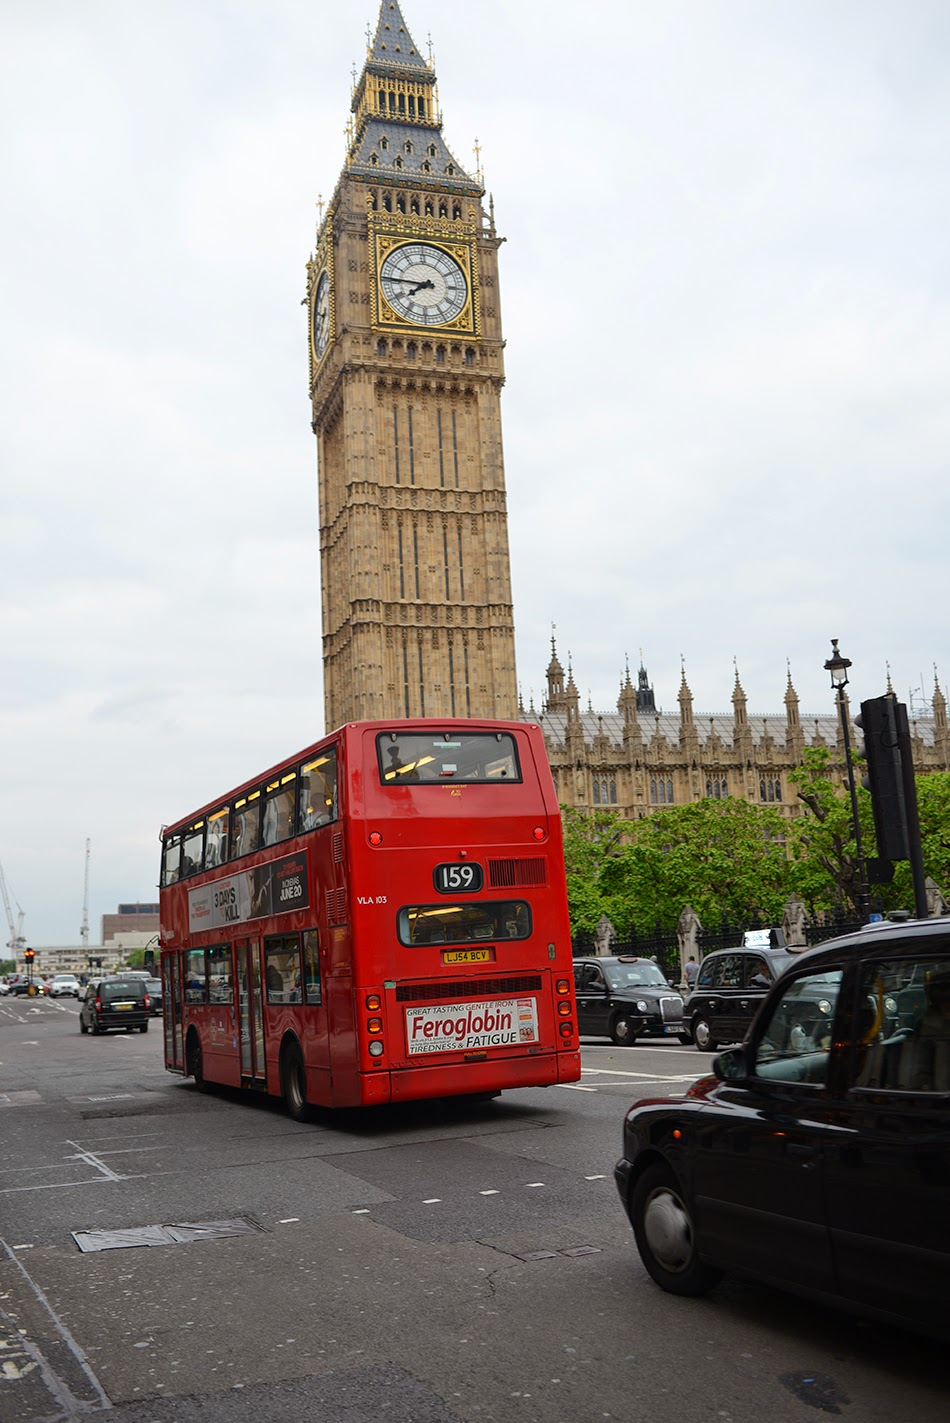 pretty nice a44ce e64dc Arriving back to one of my favorite places EVER,  London. The double decker  red bus s, phone booths and architecture just get me going!